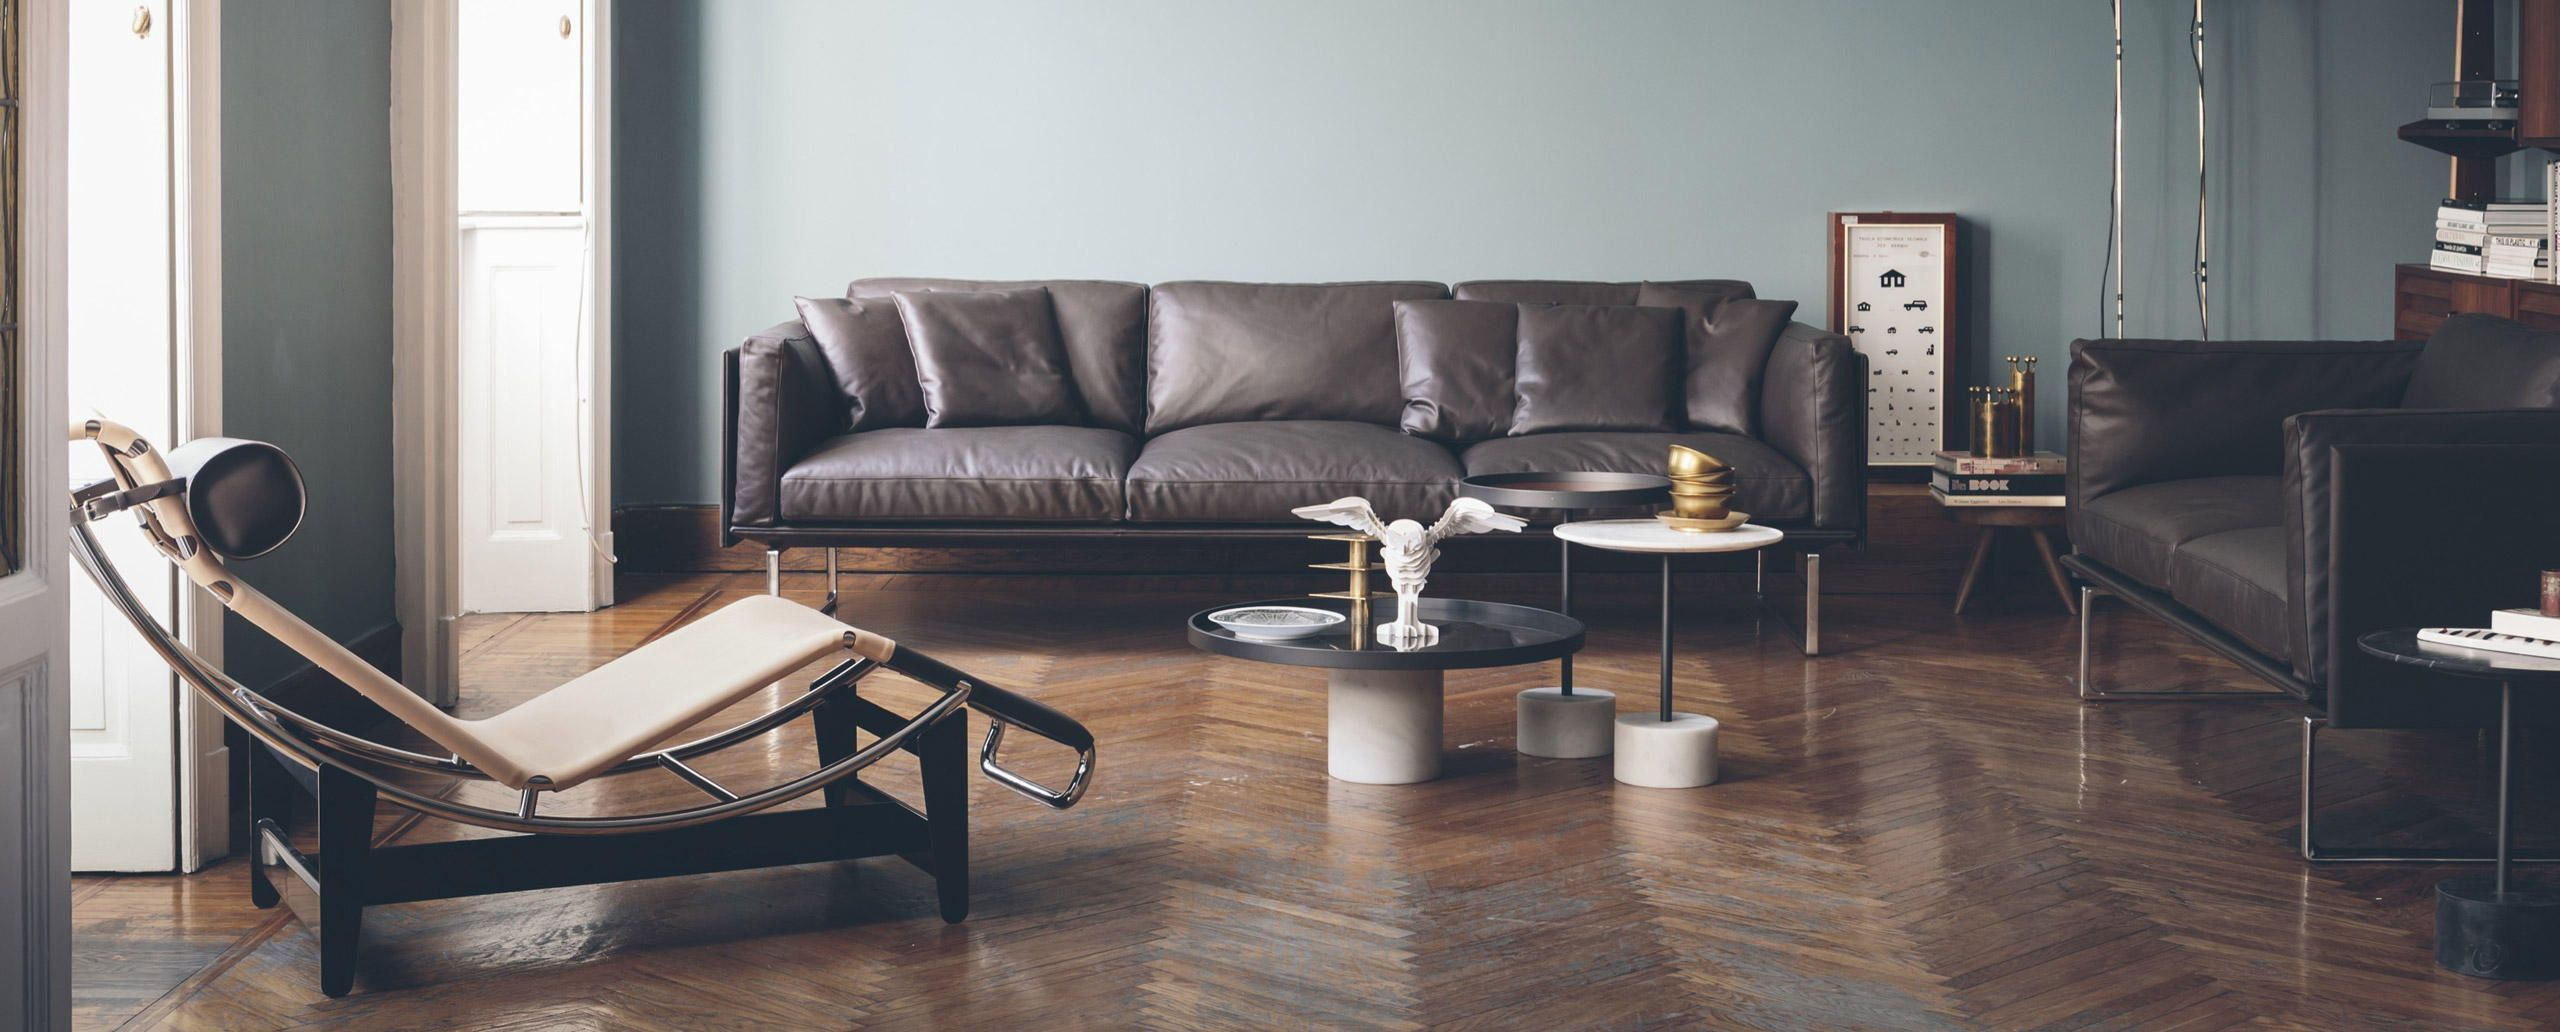 8 Otto New Super Comfortable Sofa By Lissoni For Cassina